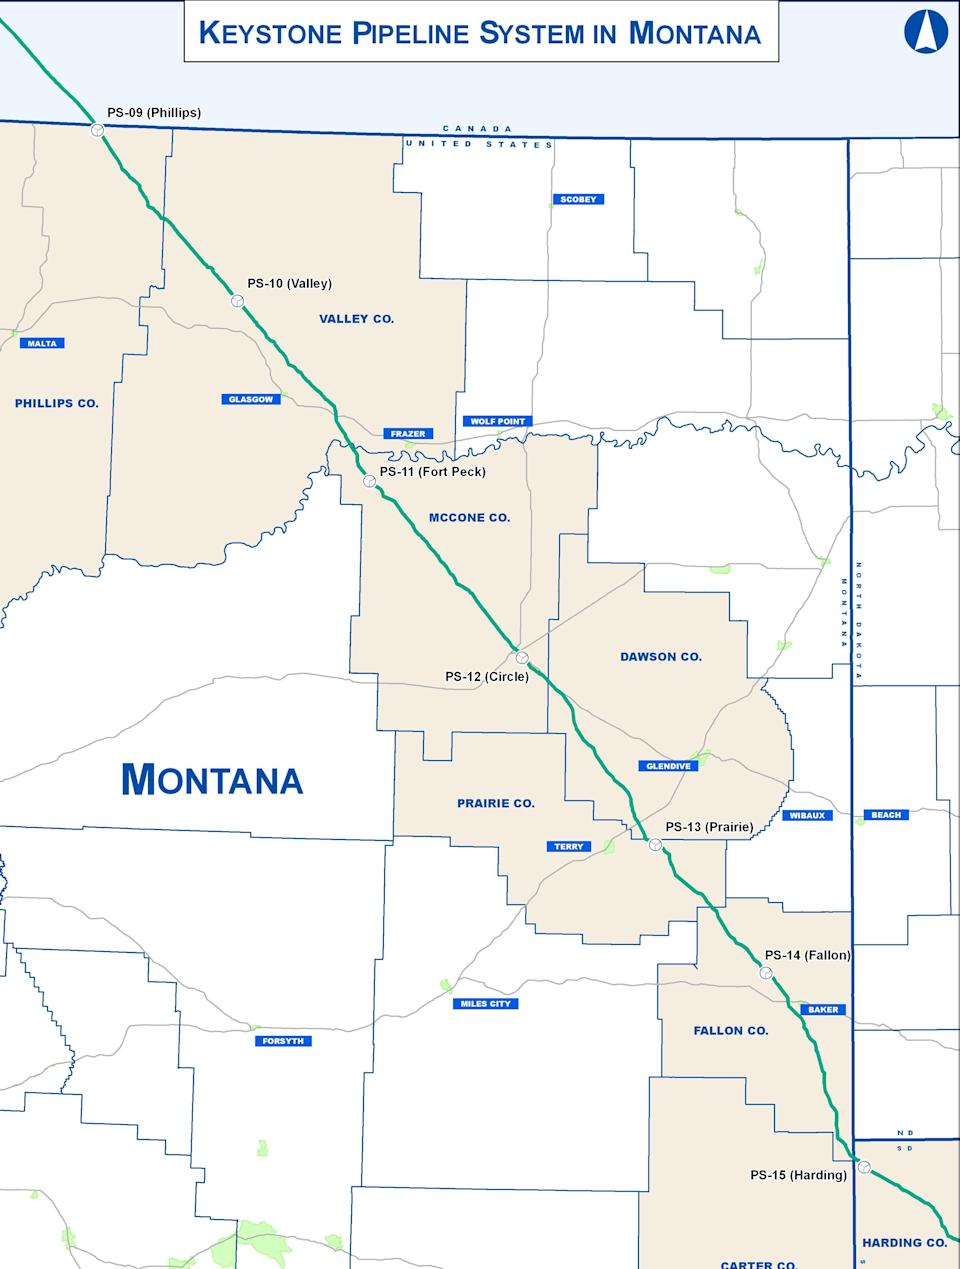 Keystone XL Pipeline route through Montana.